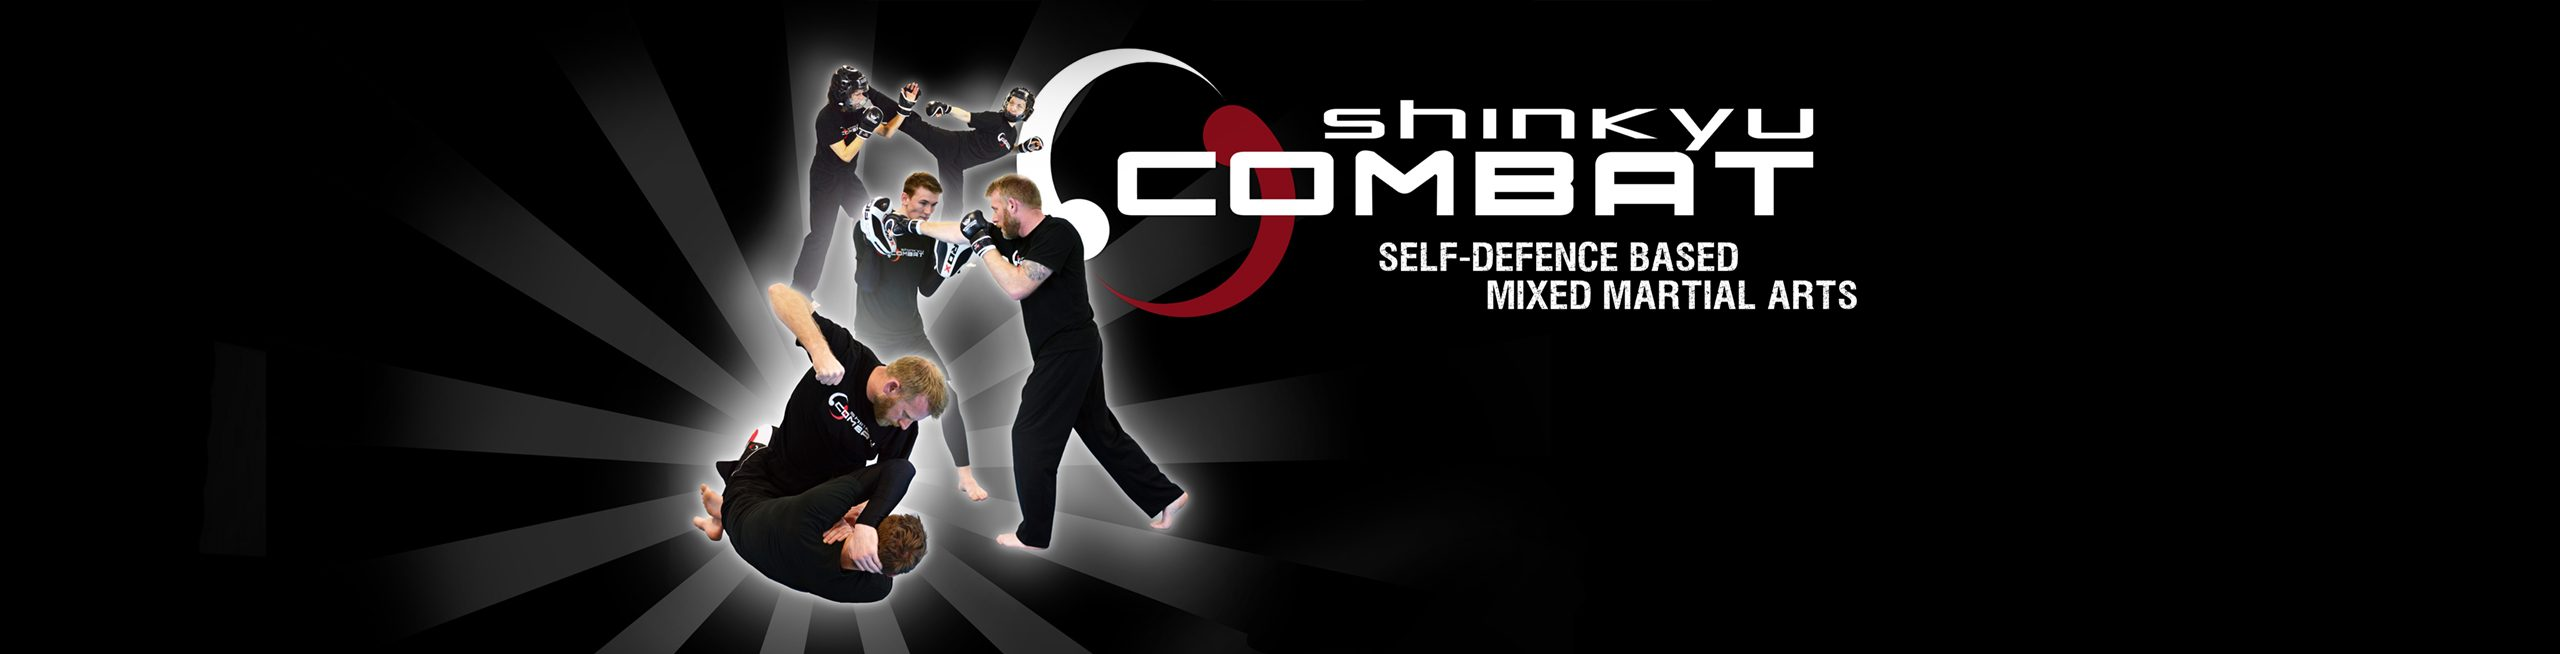 martial arts website combat slider v1